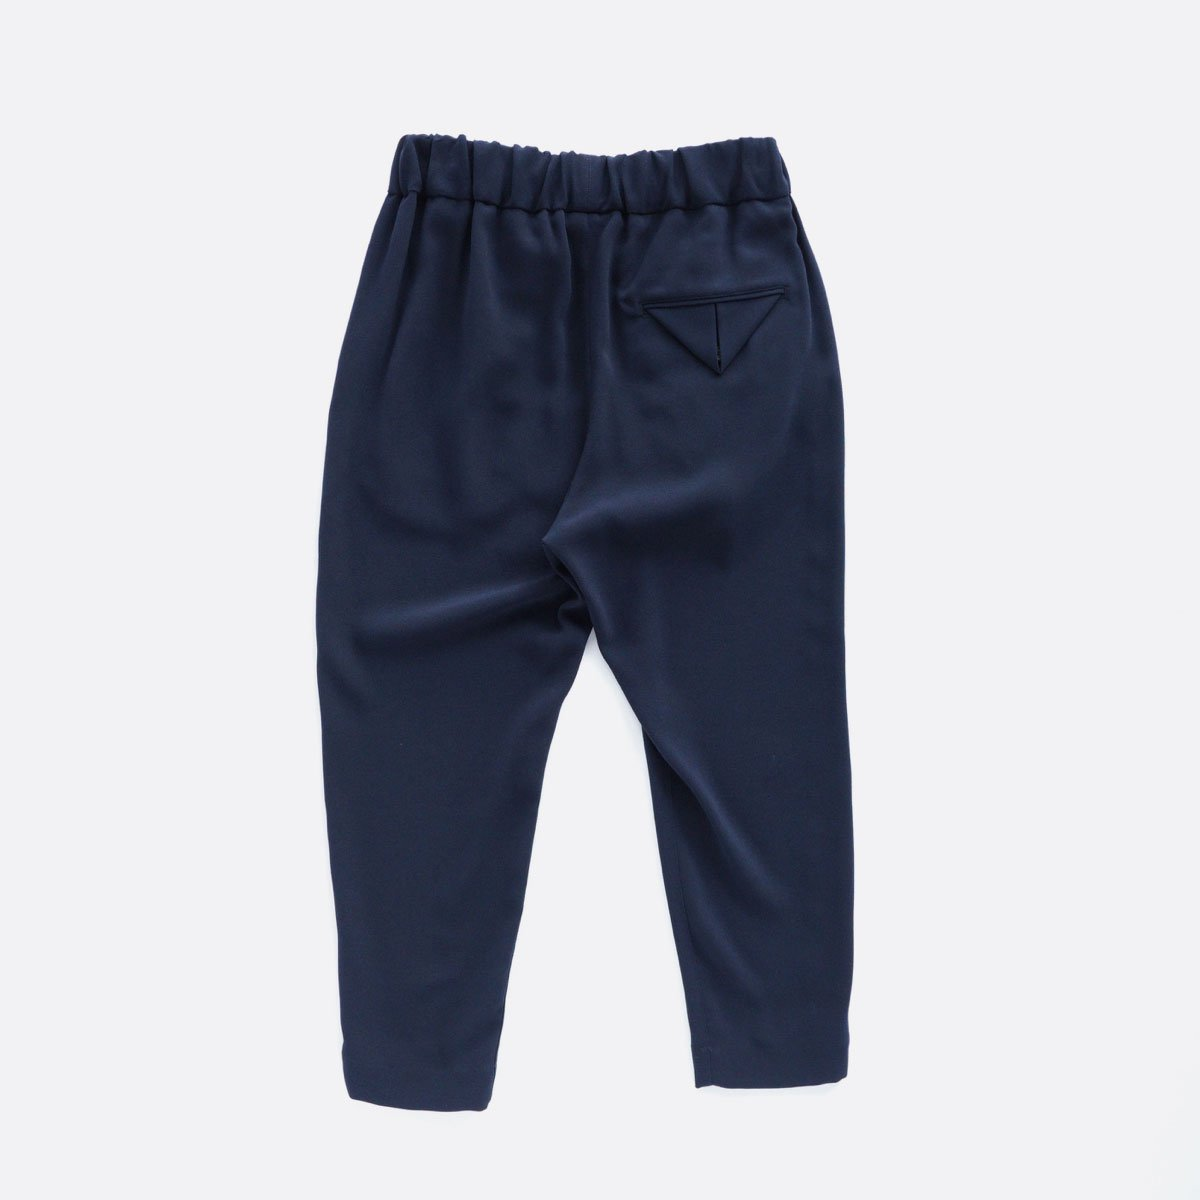 NO CONTROL AIR ACETATE & POLYESTER DOUBLE CLOTH TAPERED EASY PANTS (navy)2